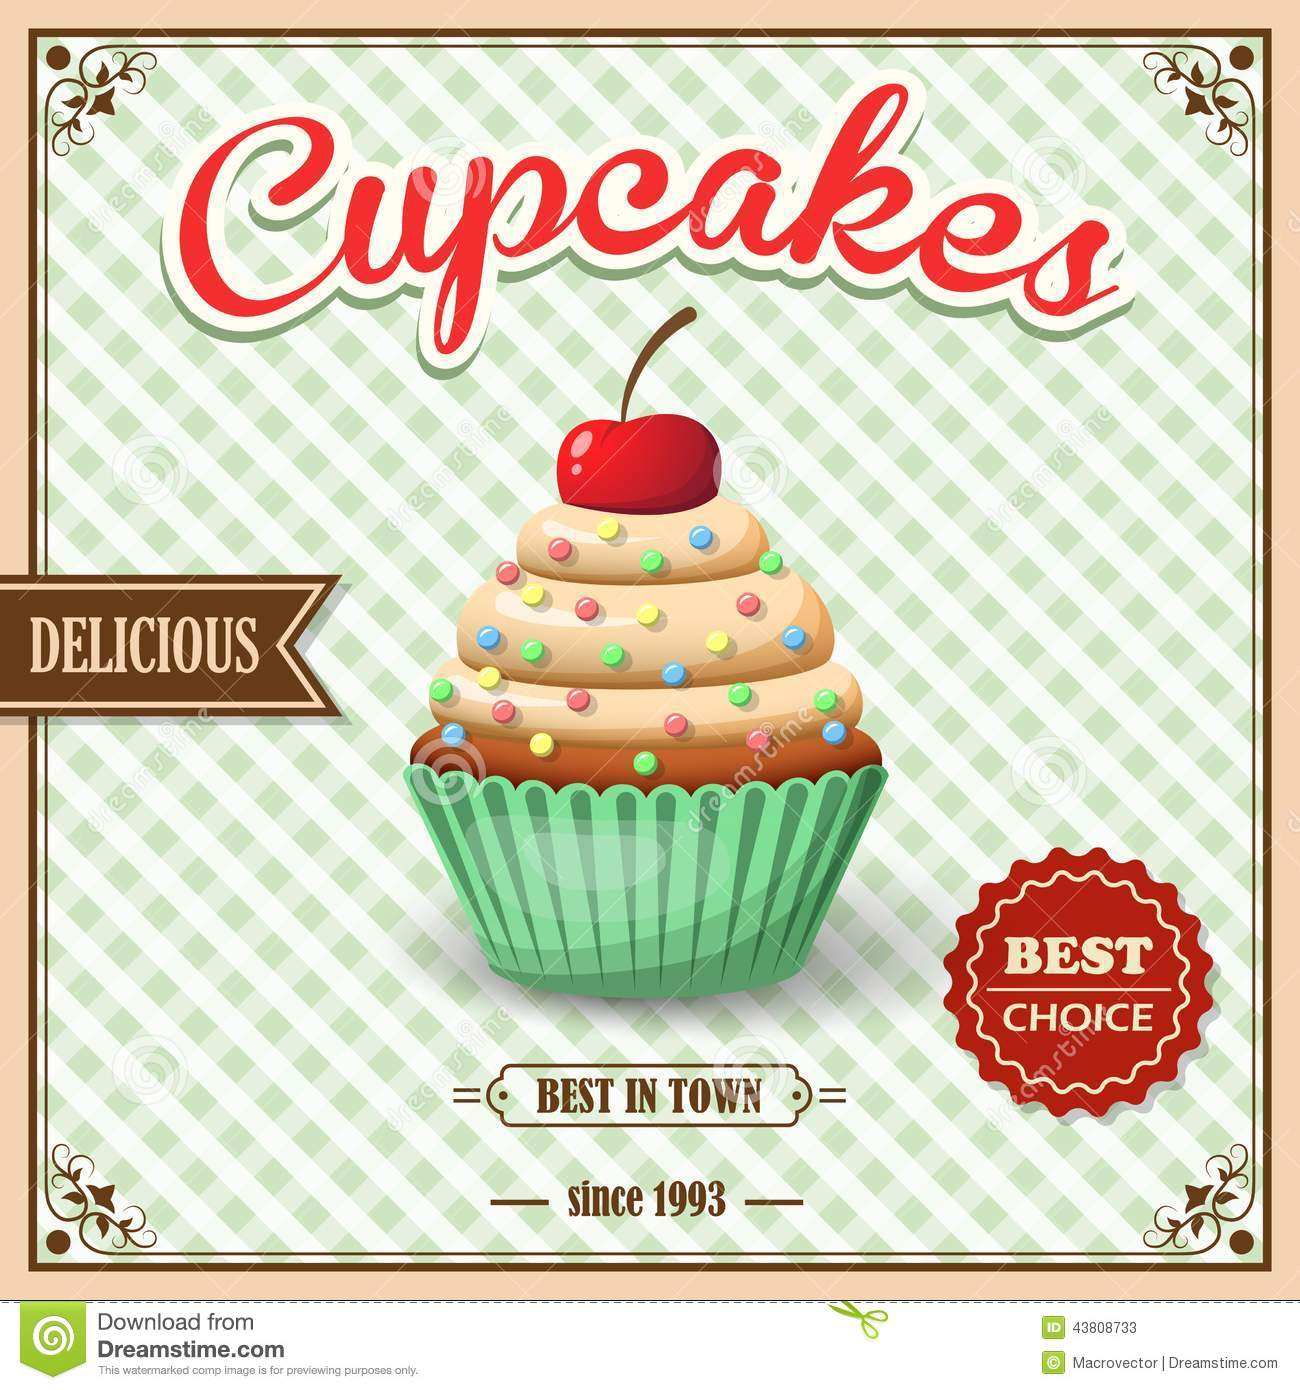 Cartoon City Landscape Vector 02 also Chemical Flasks 18 Free Vector further Kaddu In English further Stock Illustration Cupcake Cafe Poster Sweet Food Dessert Delicious Retro Squared Background Vector Illustration Image43808733 besides Royalty Free Stock Image E  merce Globe Illustration Design Over White Background Image33261266. on vintage architecture diagram